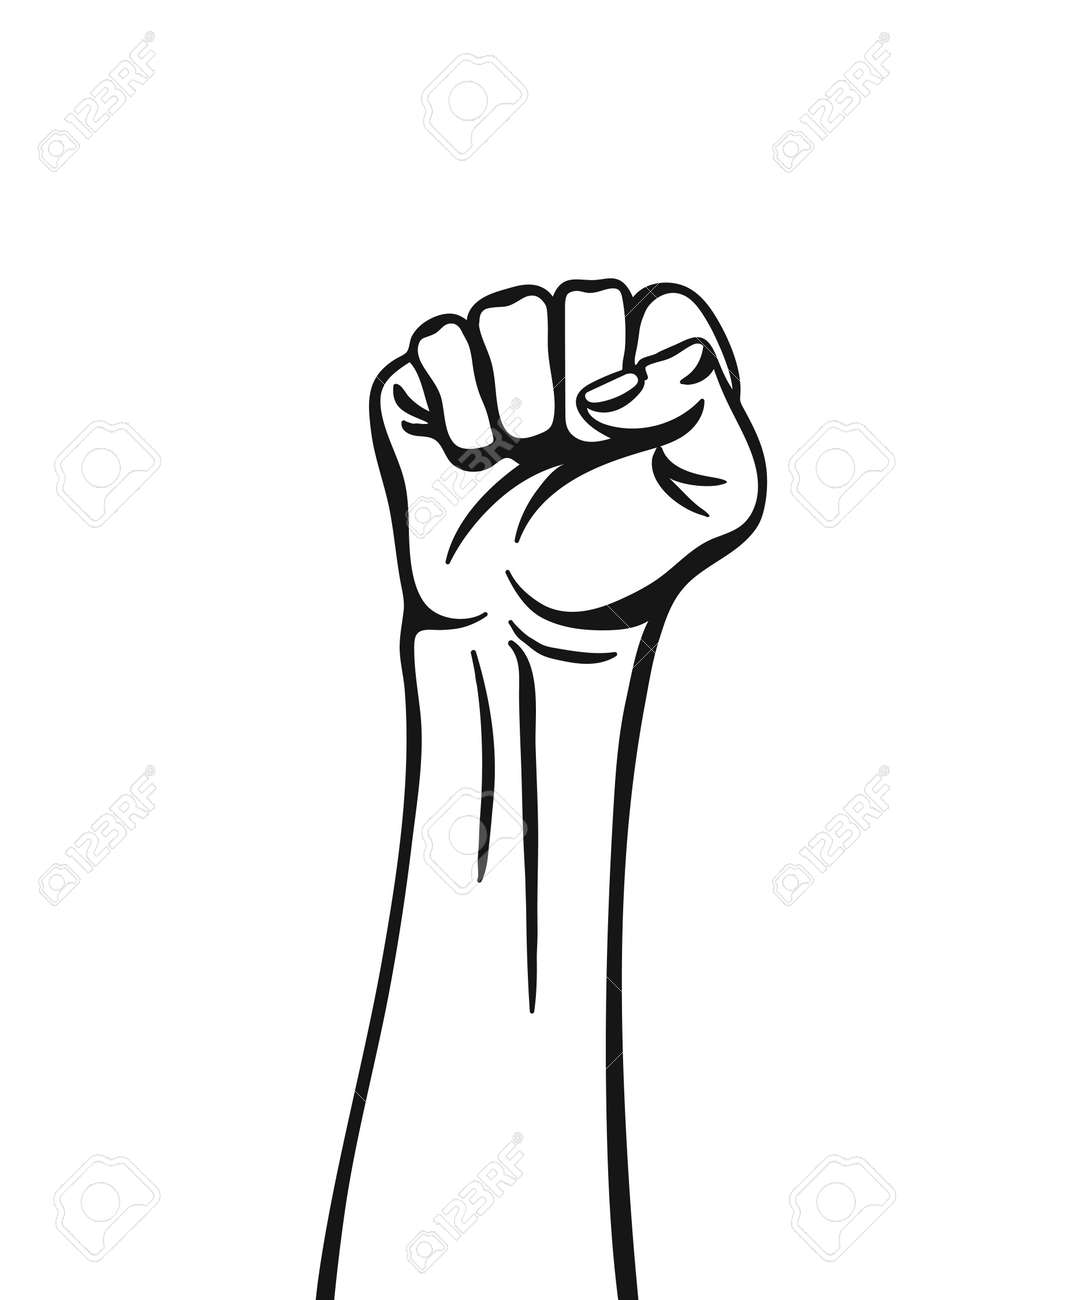 Raised hand with clenched fist. Vector illustration isolated on white background. - 162411945